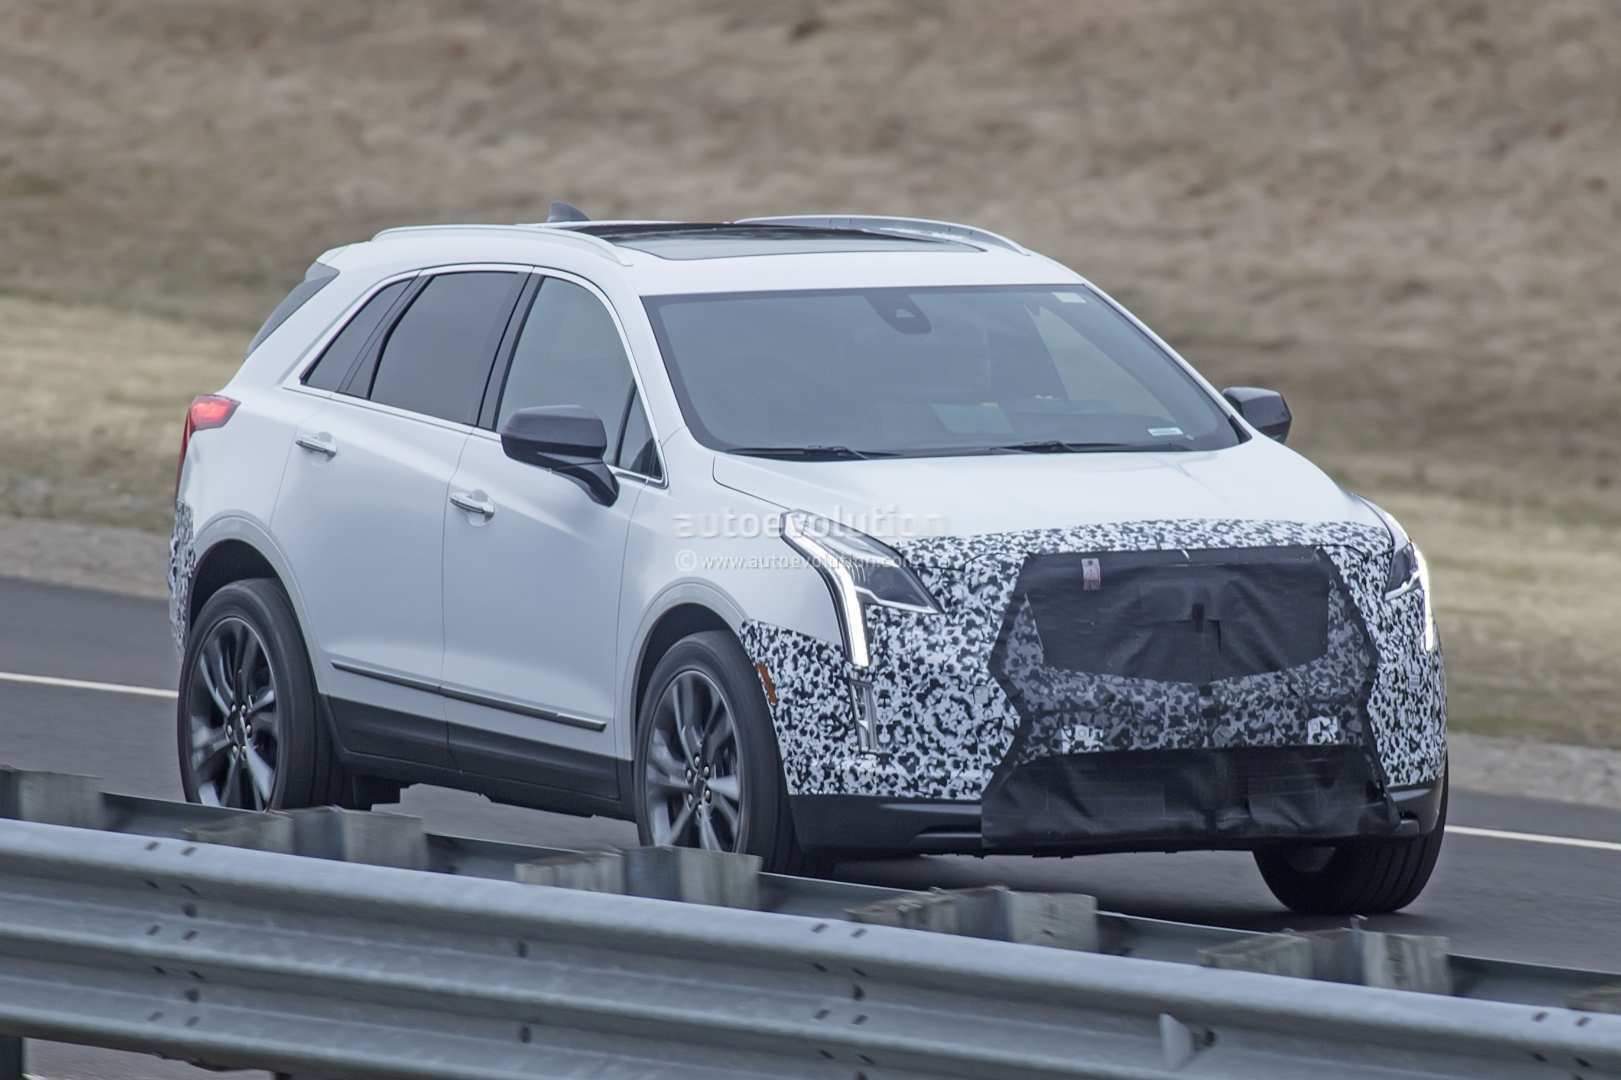 33 Concept of New Cadillac Xt5 2020 Performance with New Cadillac Xt5 2020